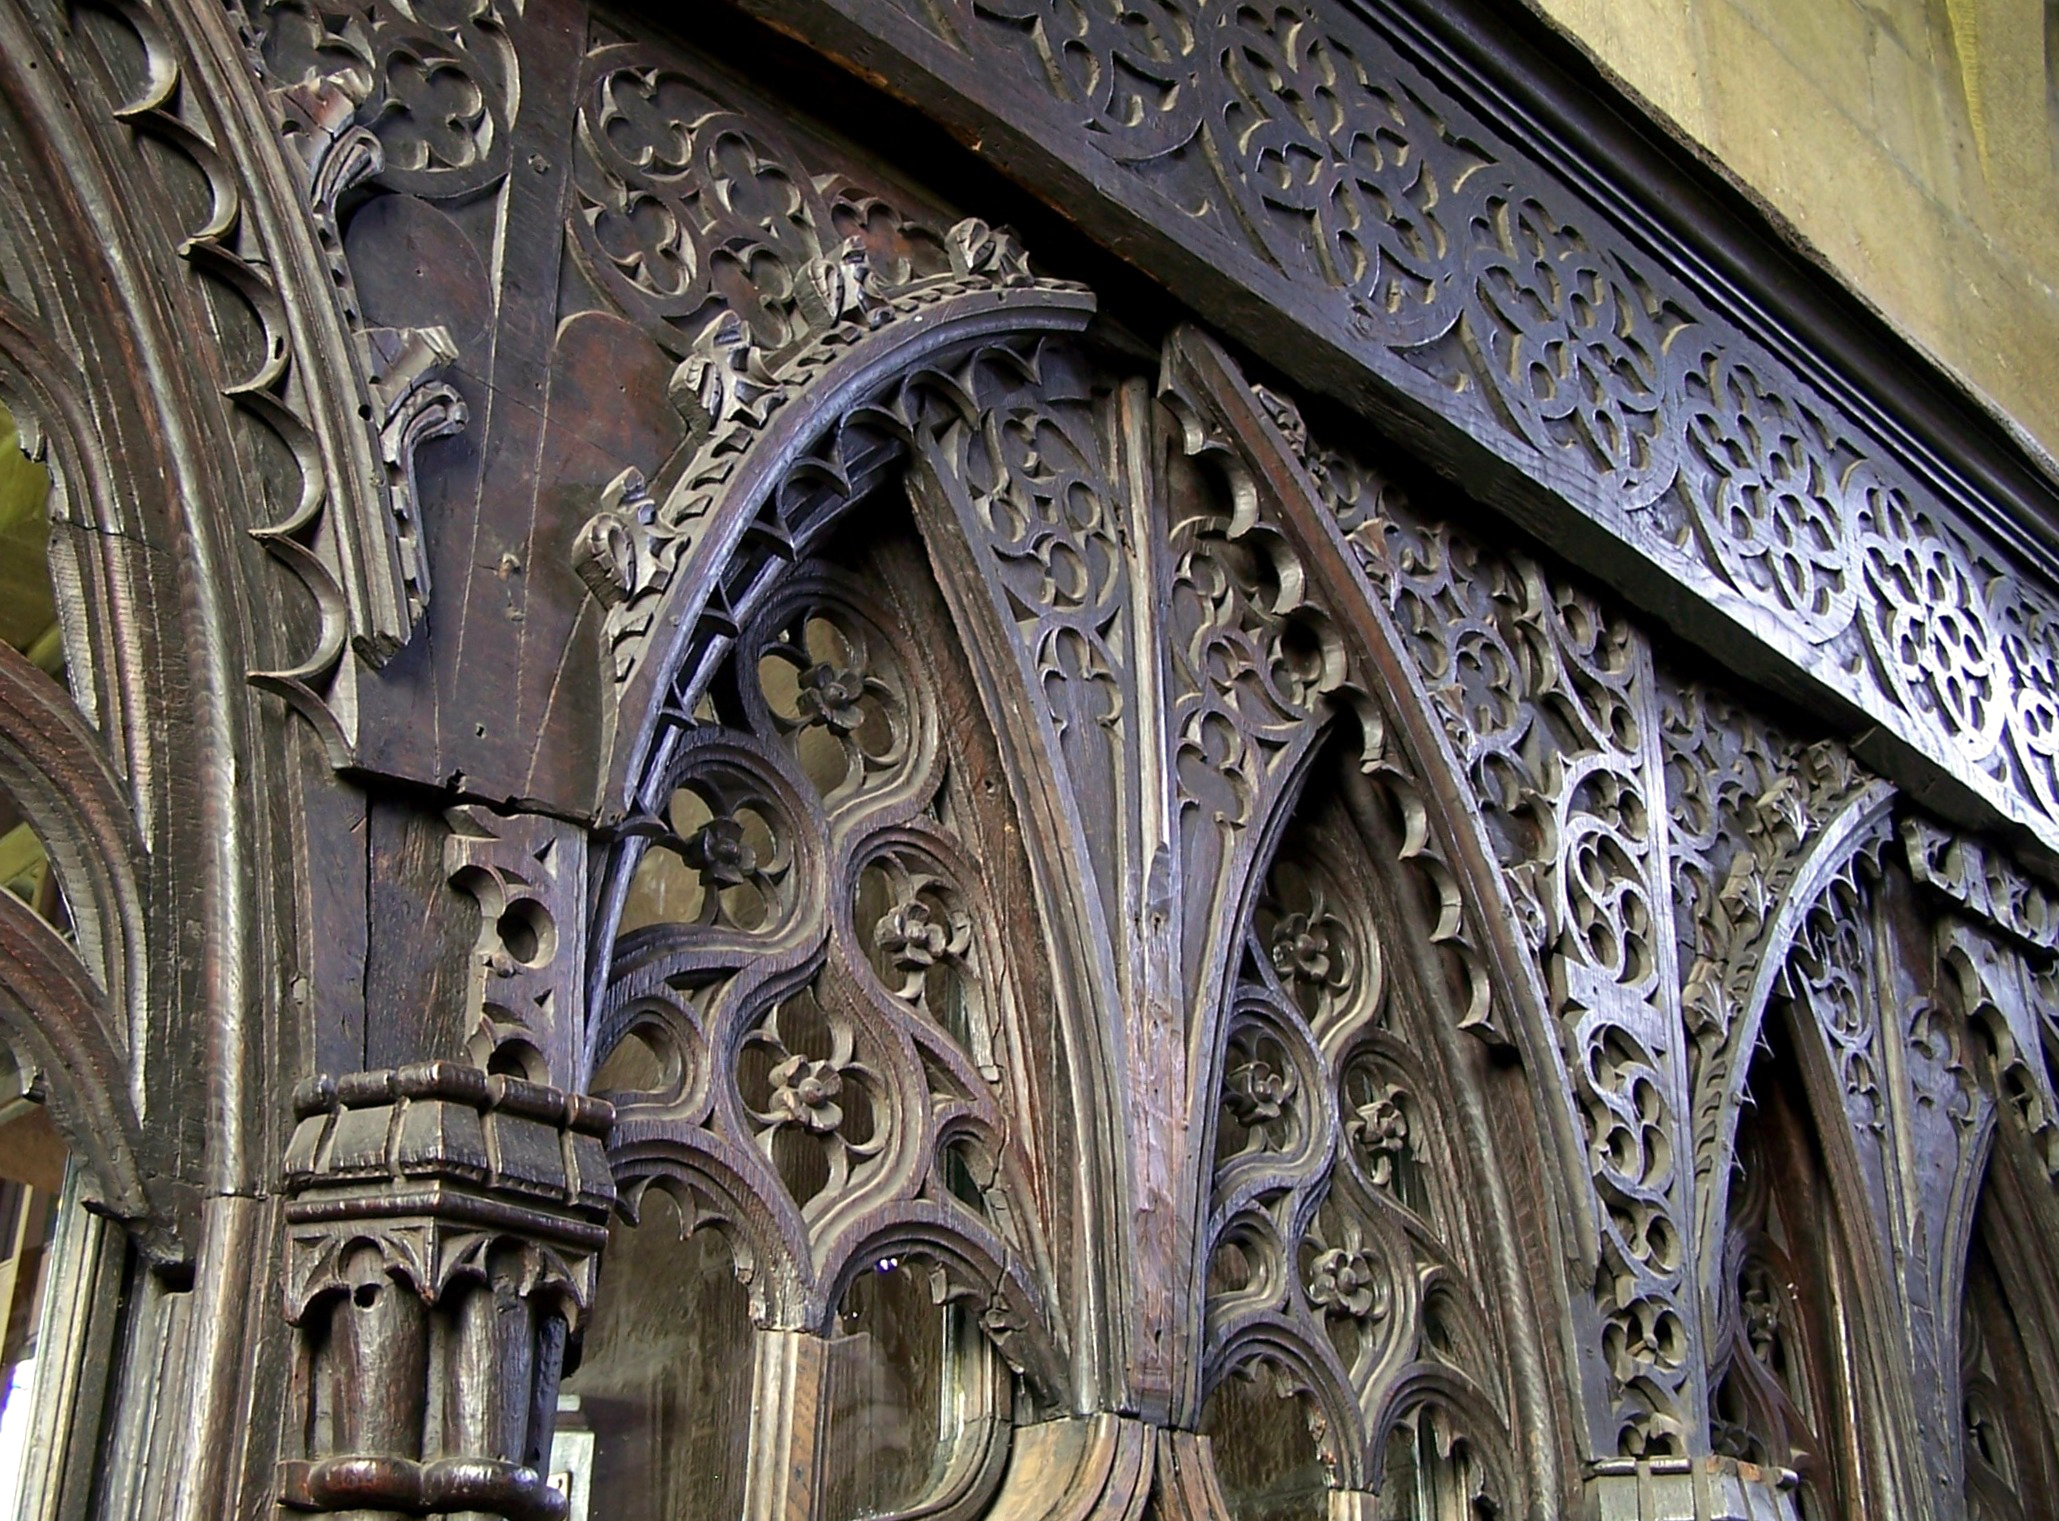 14. Discover a rood screen